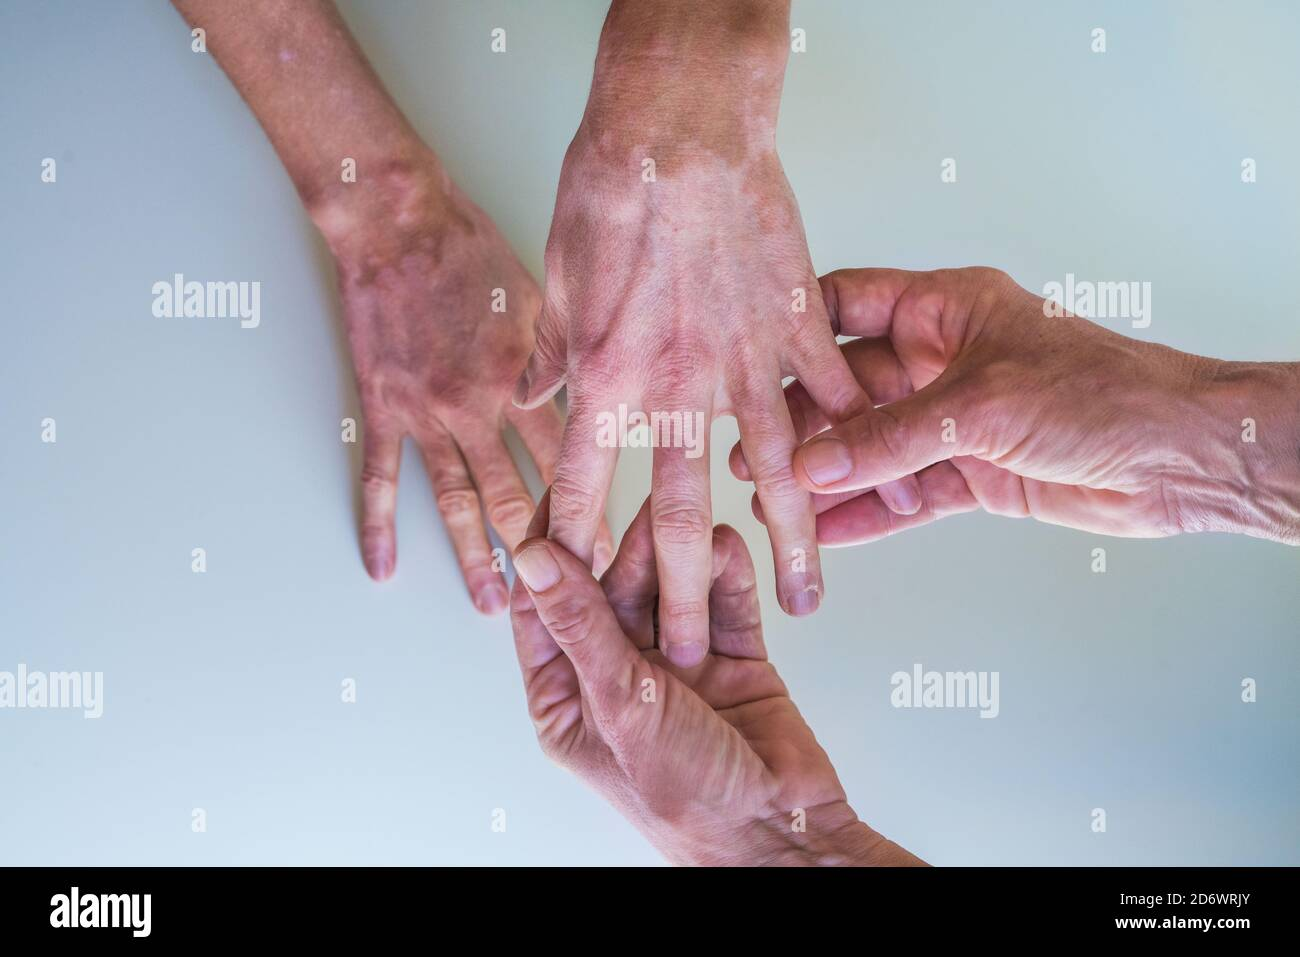 View Of Vitiligo Skin Pigment Loss In The Hands Of A 35 Year Old Woman Stock Photo Alamy